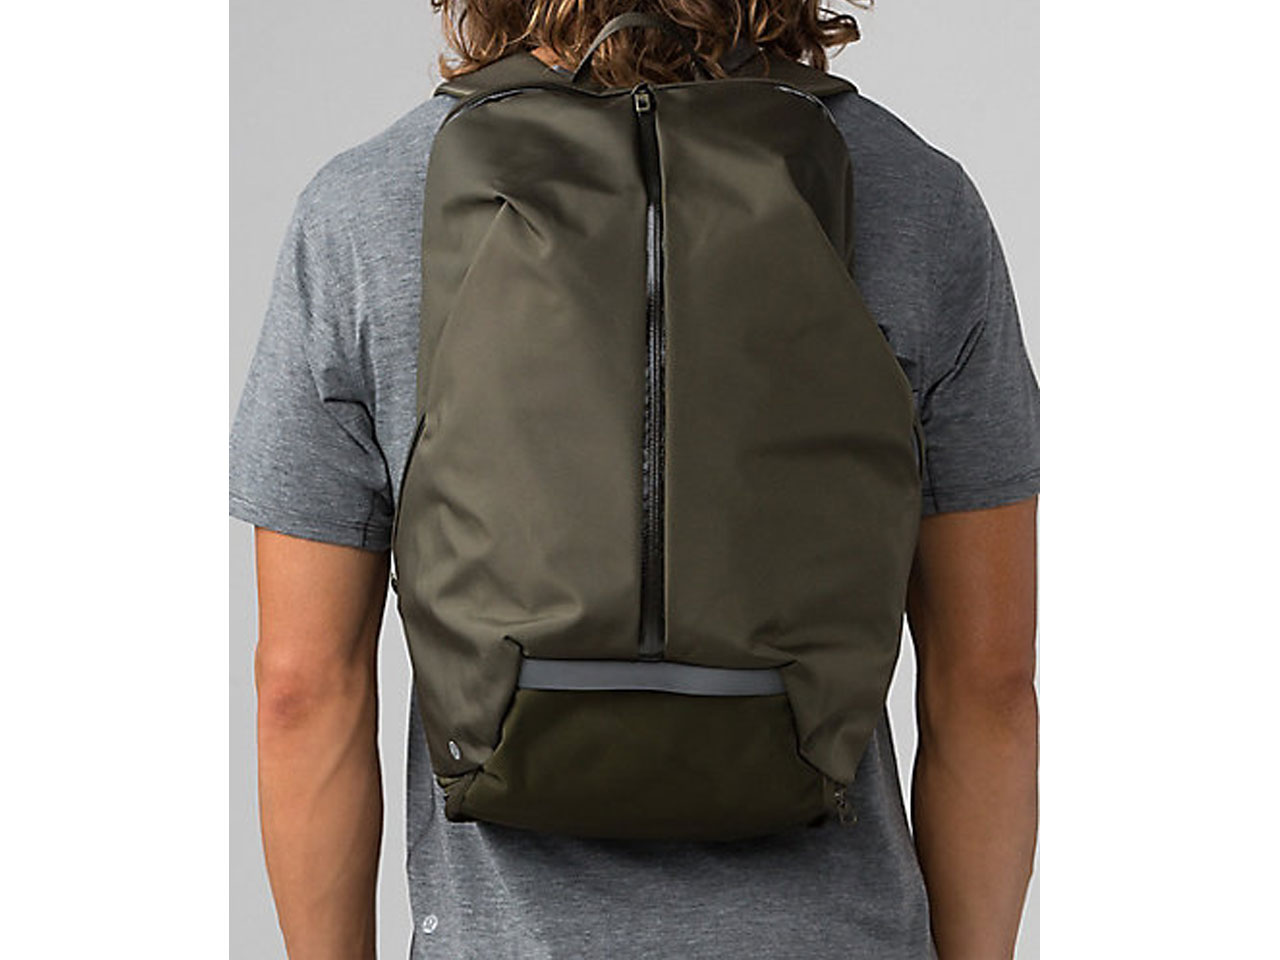 007b812060 The Most Kickass Backpacks for Hiking